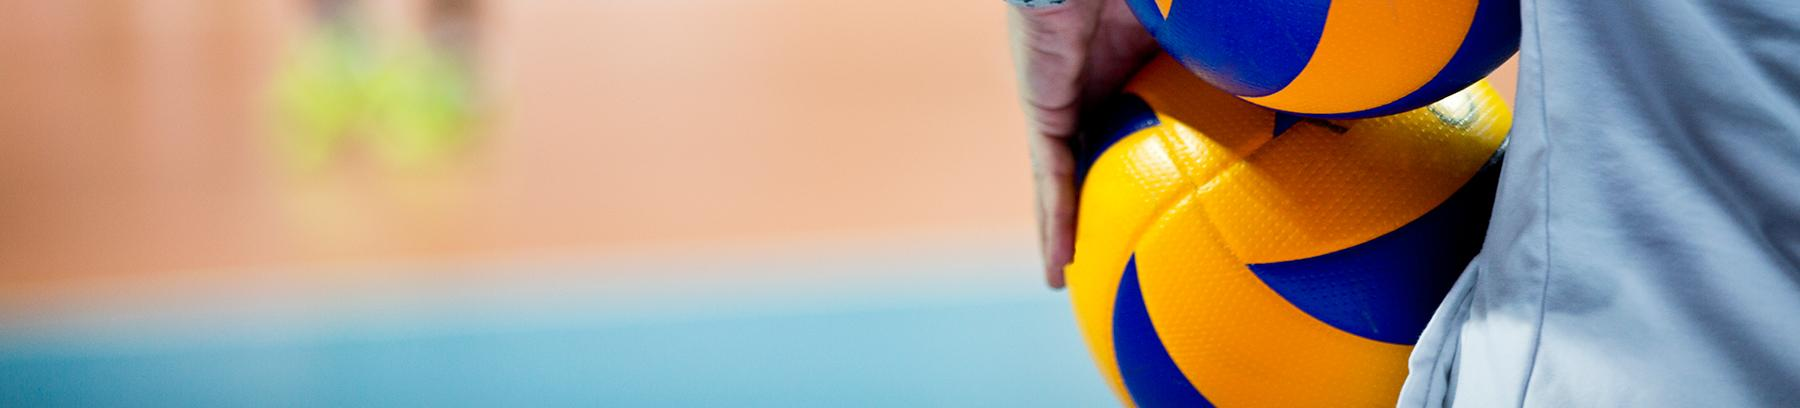 Close up of a person holding a volleyball.